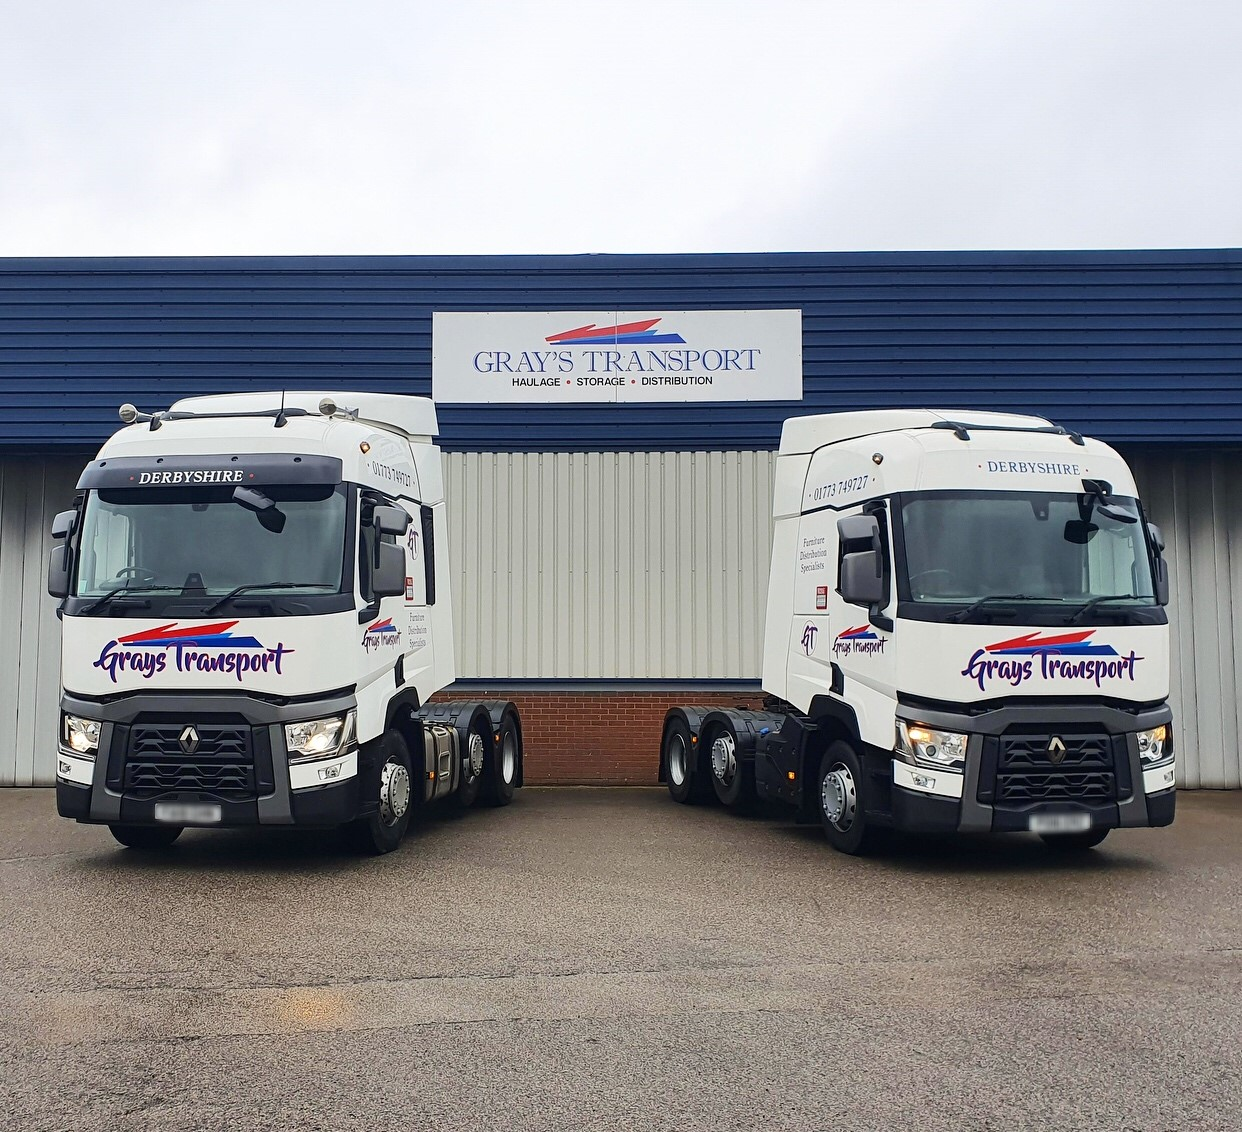 LONG STANDING TENANT GRAYS TRANSPORT EXPAND THEIR BUSINESS FURTHER main image